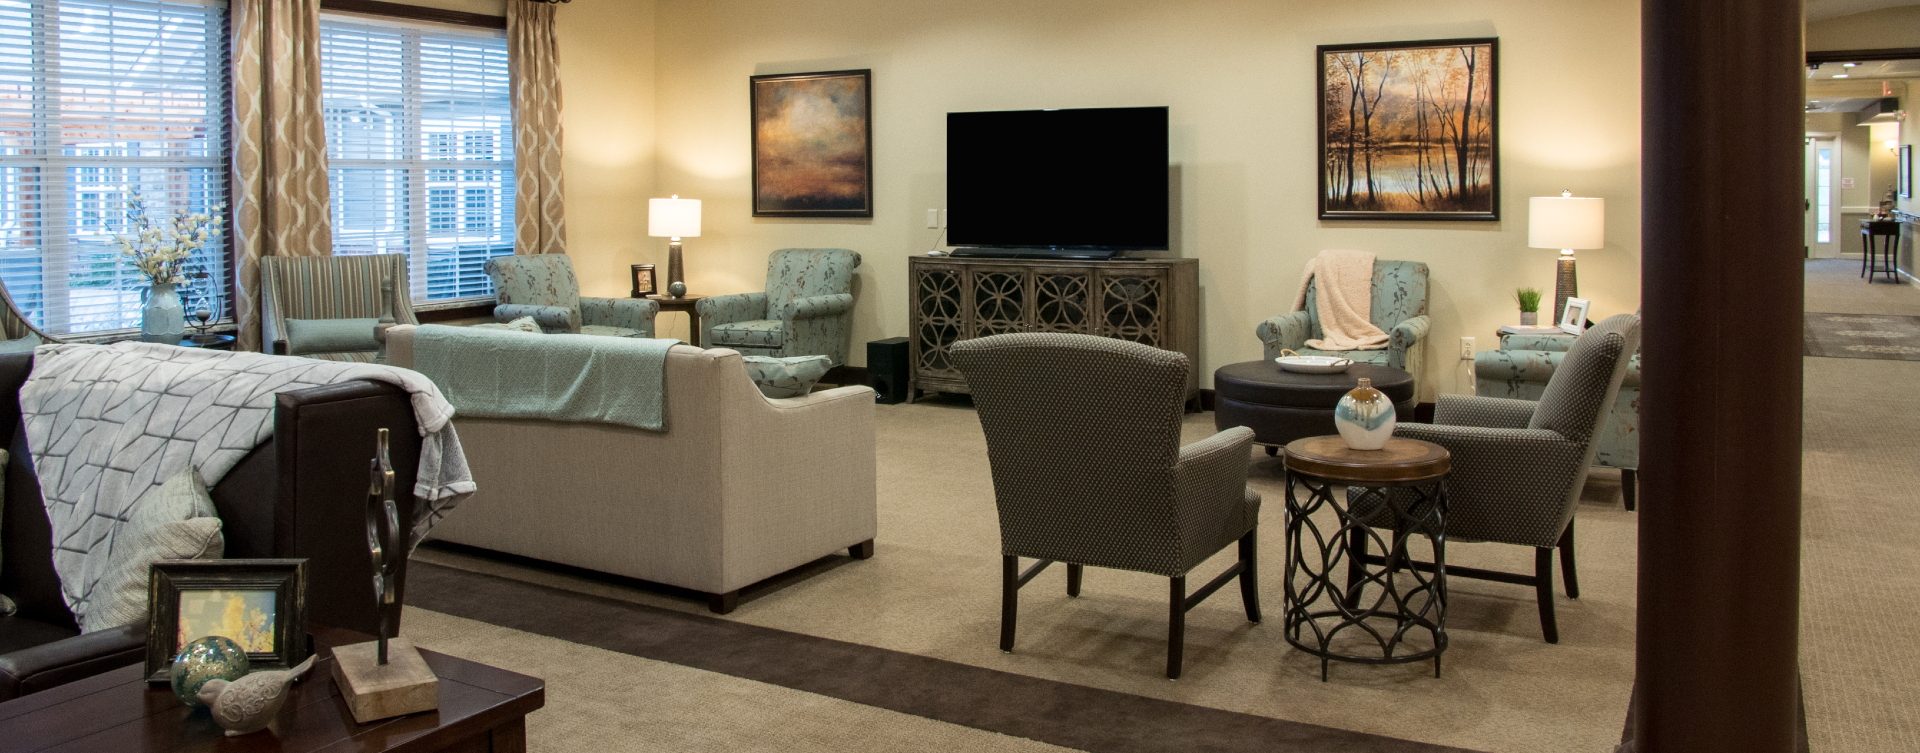 Snooze in your favorite chair in the living room at Bickford of Spotsylvania